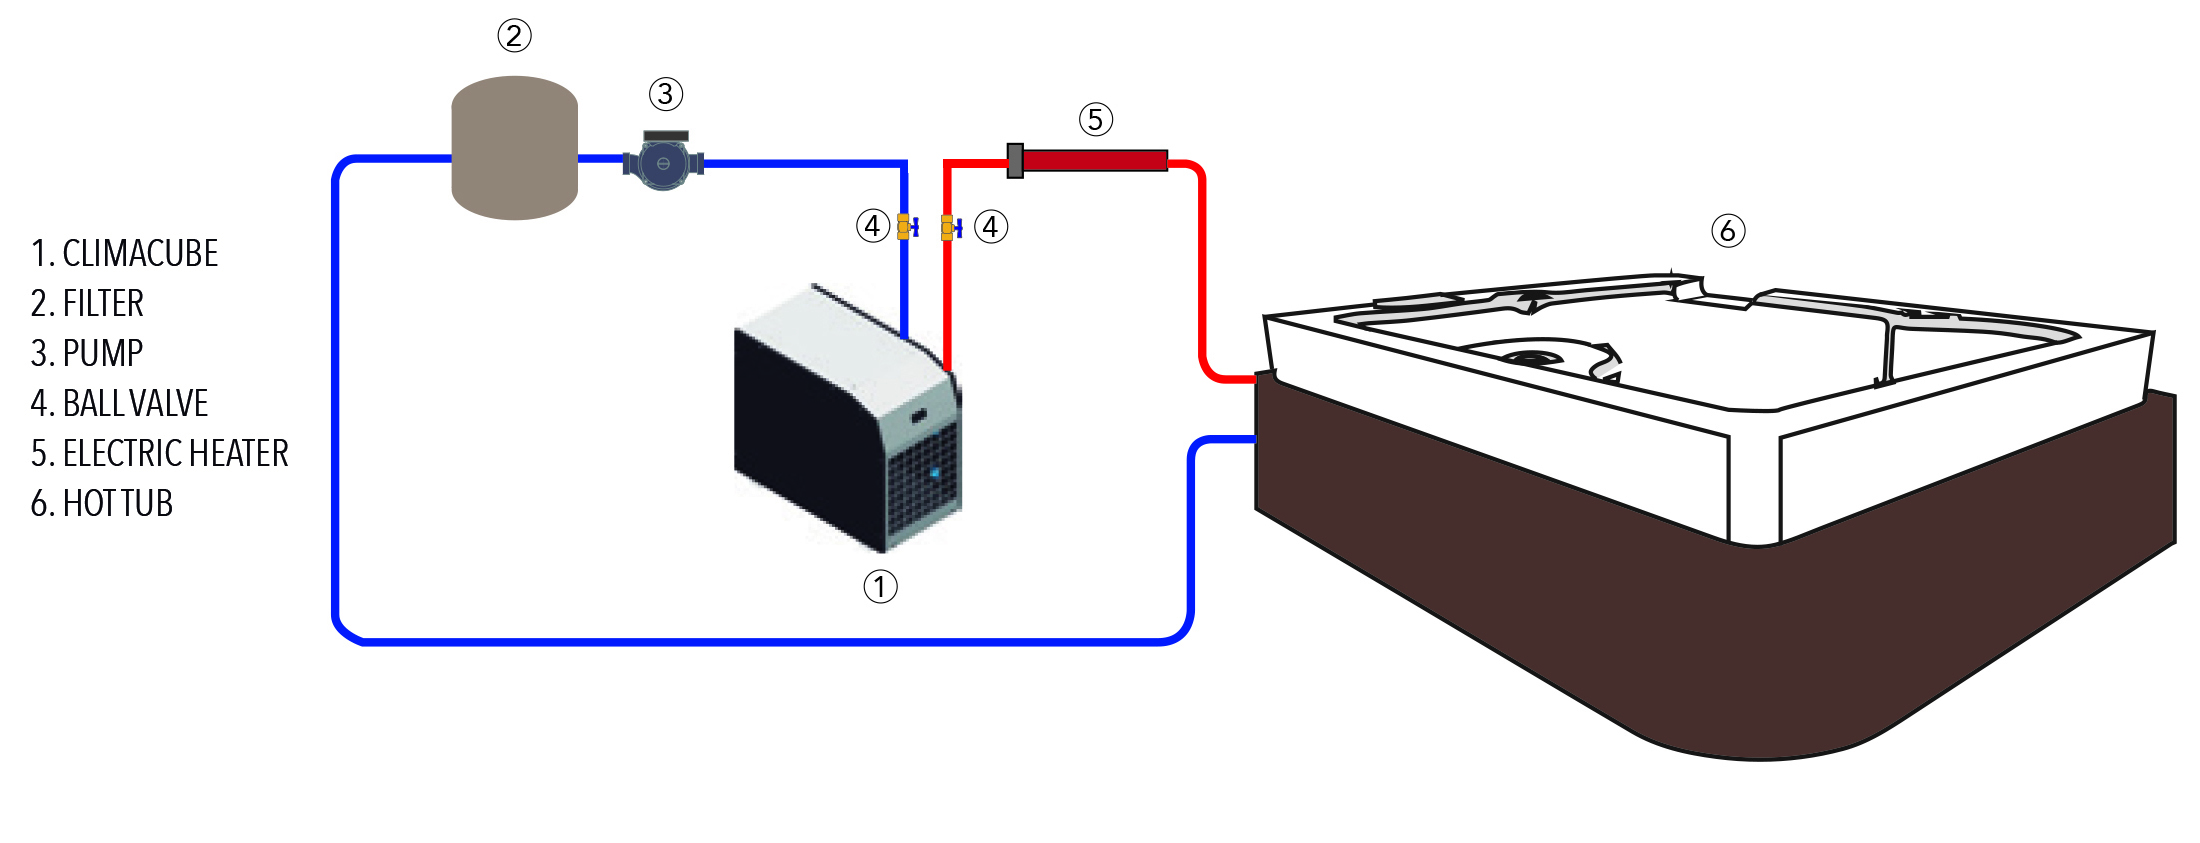 Hot Tub Electrical Installation Cost Uk - Somurich.com Jacuzzi Wiring Diagram Model Winchester on